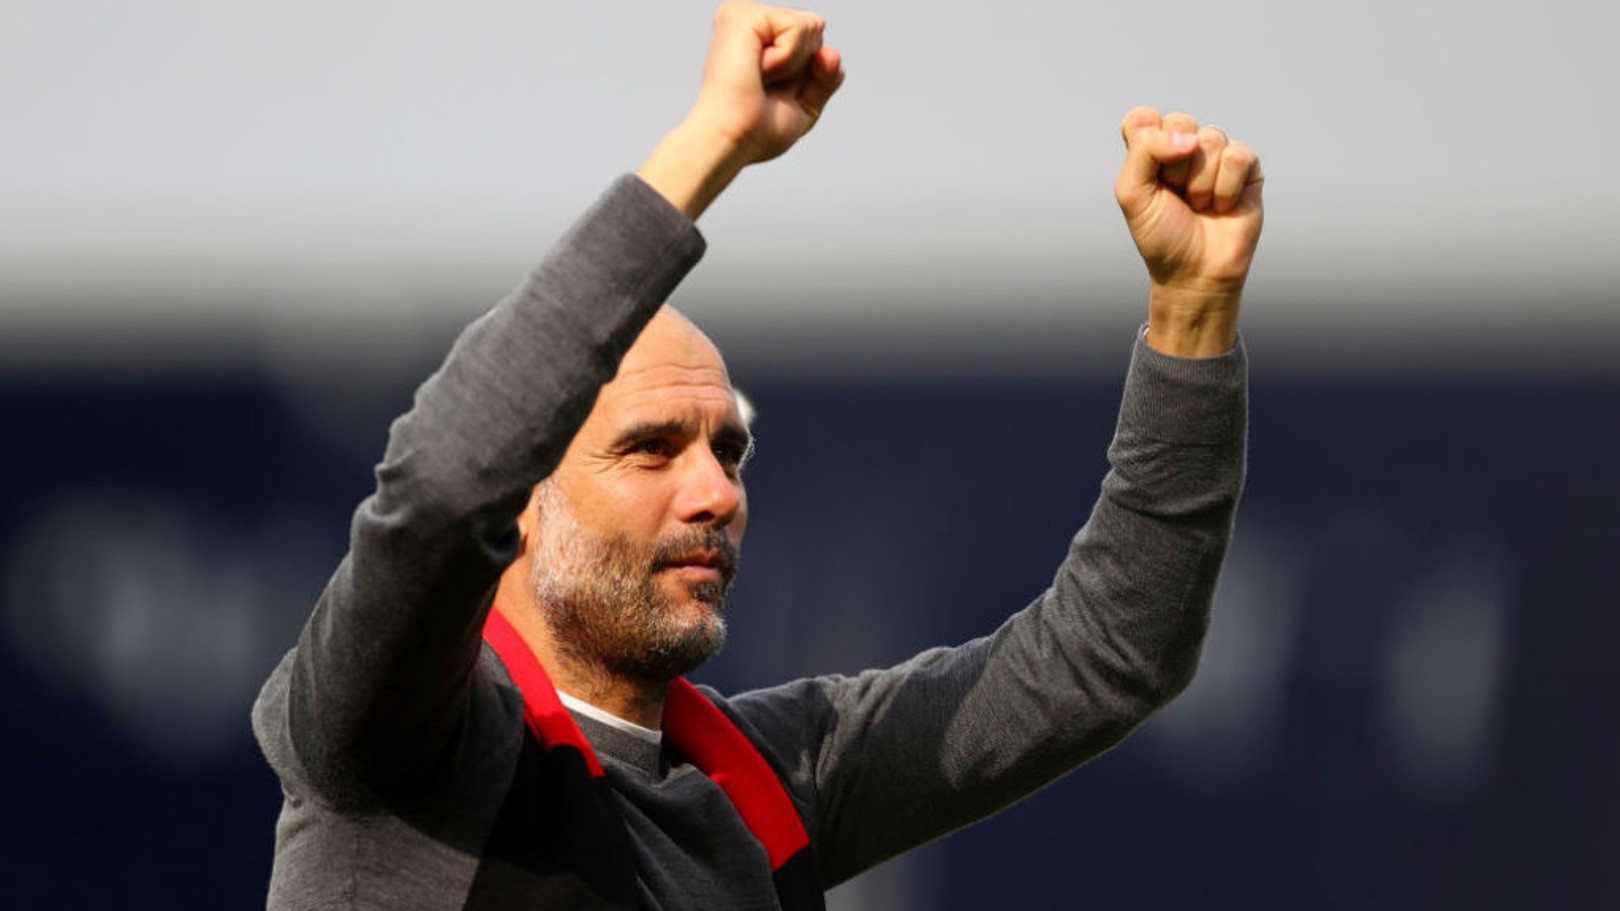 FITTING TRIBUTE: Pep Guardiola salutes the City fans wearing a red and black scarf in honour of Bernard Halford